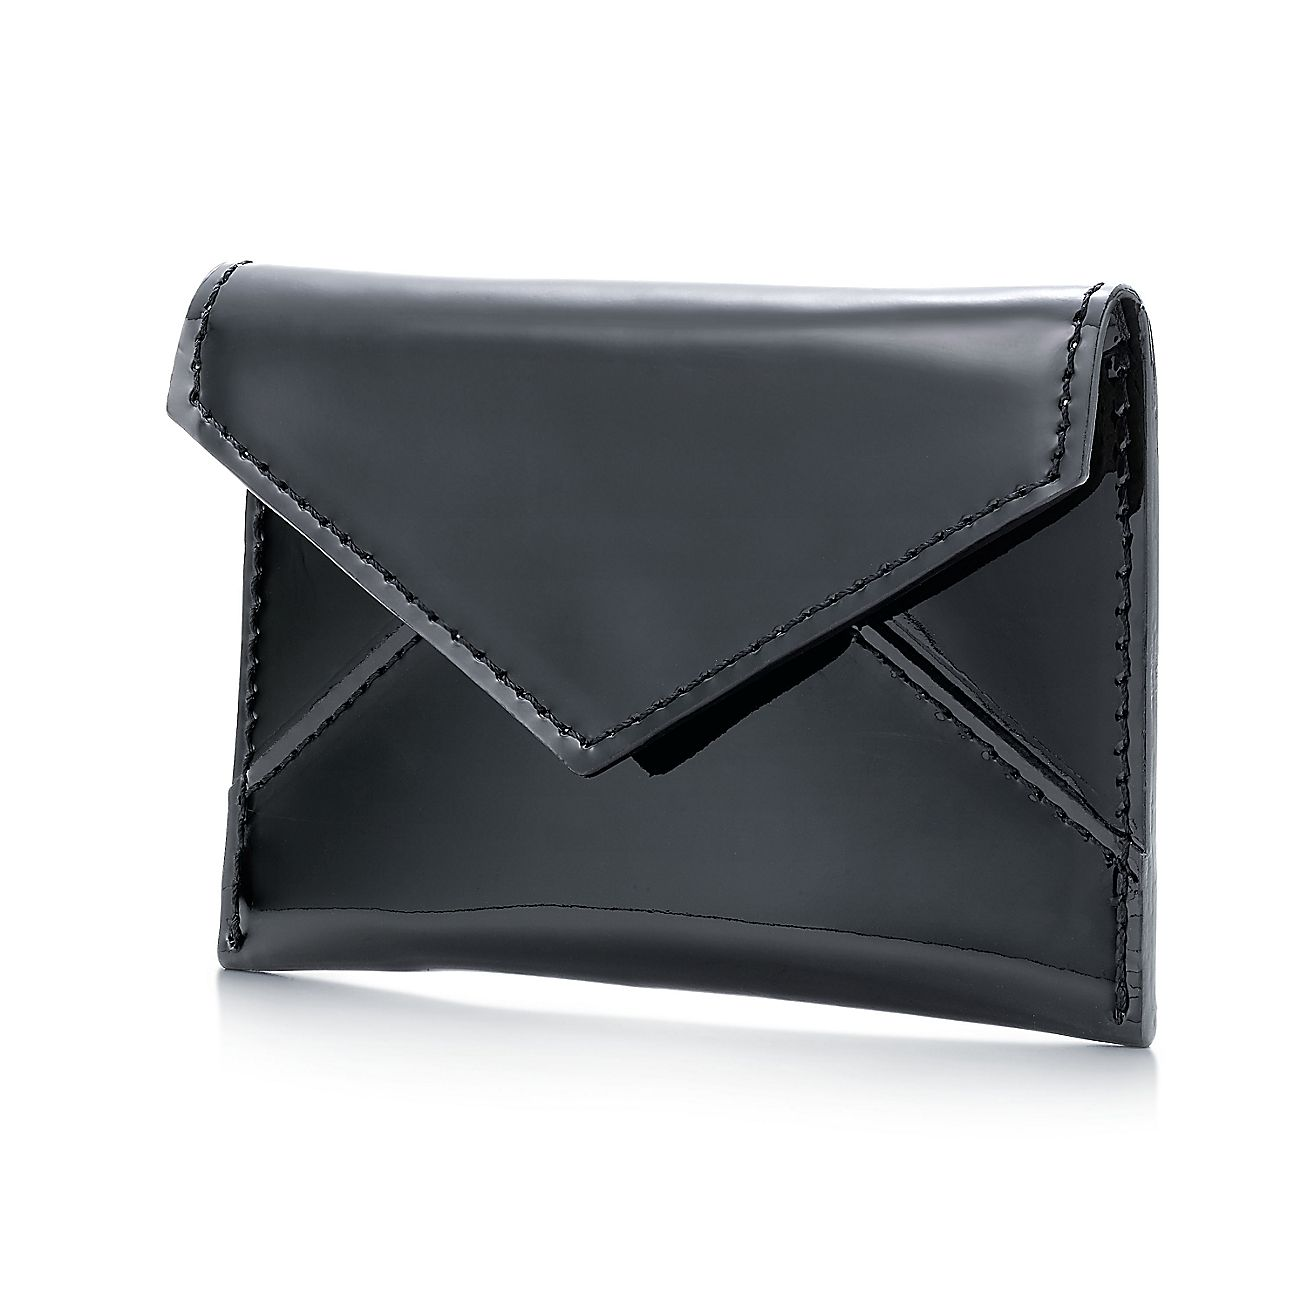 Business card case in black patent leather tiffany co for Tiffany business card case